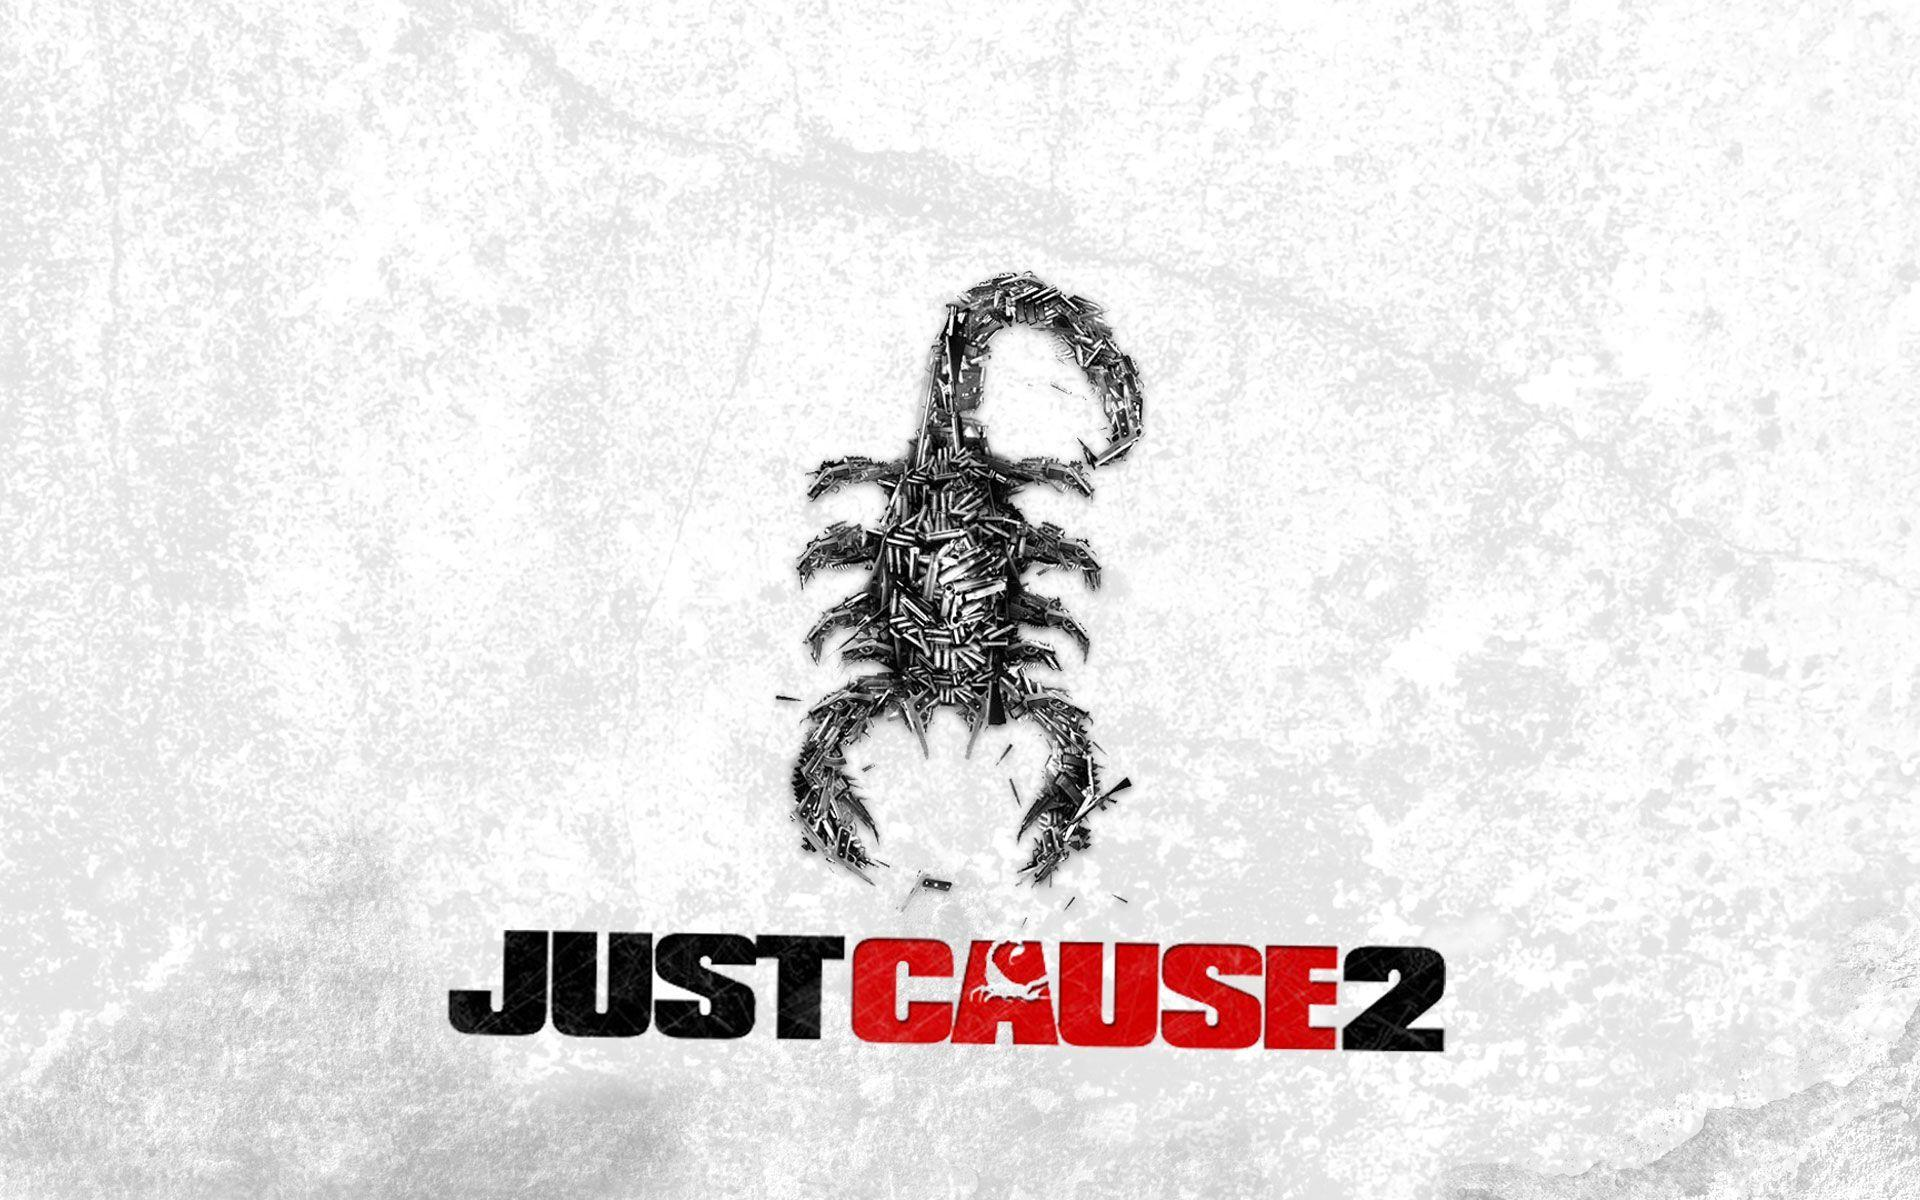 Just Cause 2 Wallpapers 16100 1920x1200 px